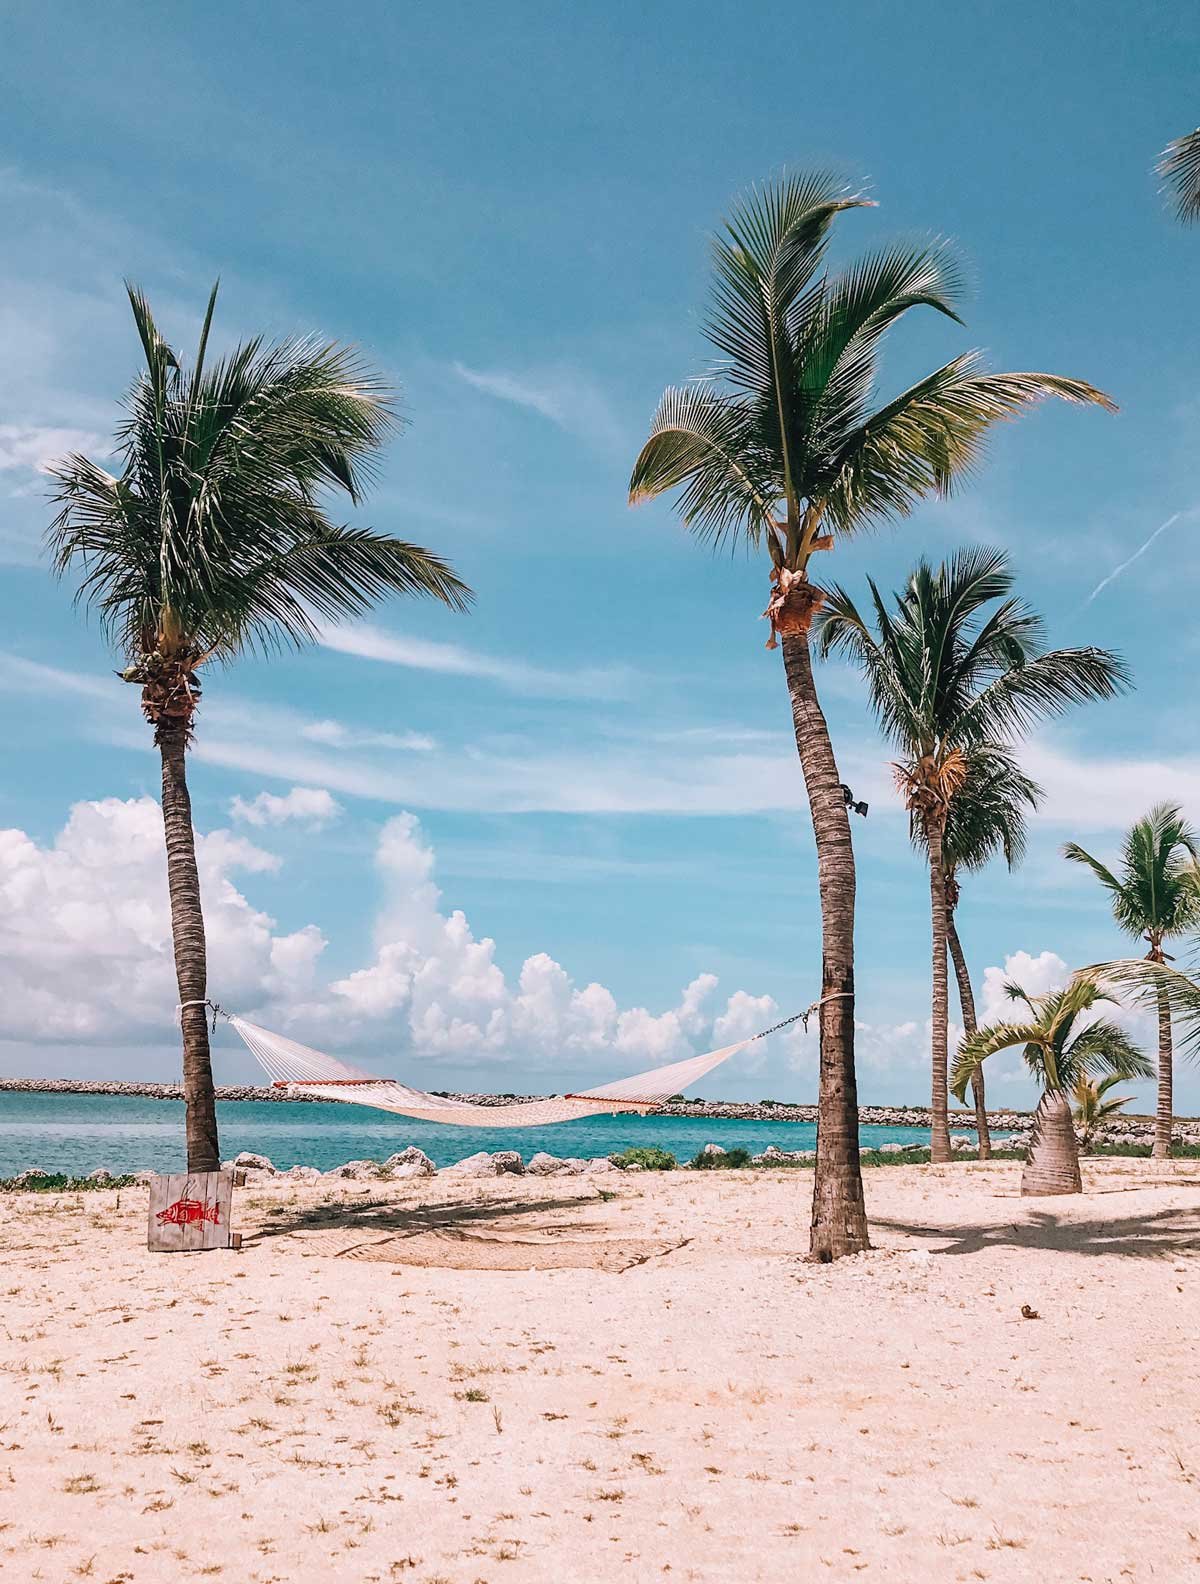 Find some of the best beaches in the world on Grand Bahama island. The complete guide covers everything you need to know! #Freeport #Bahamas #THINGSTODO